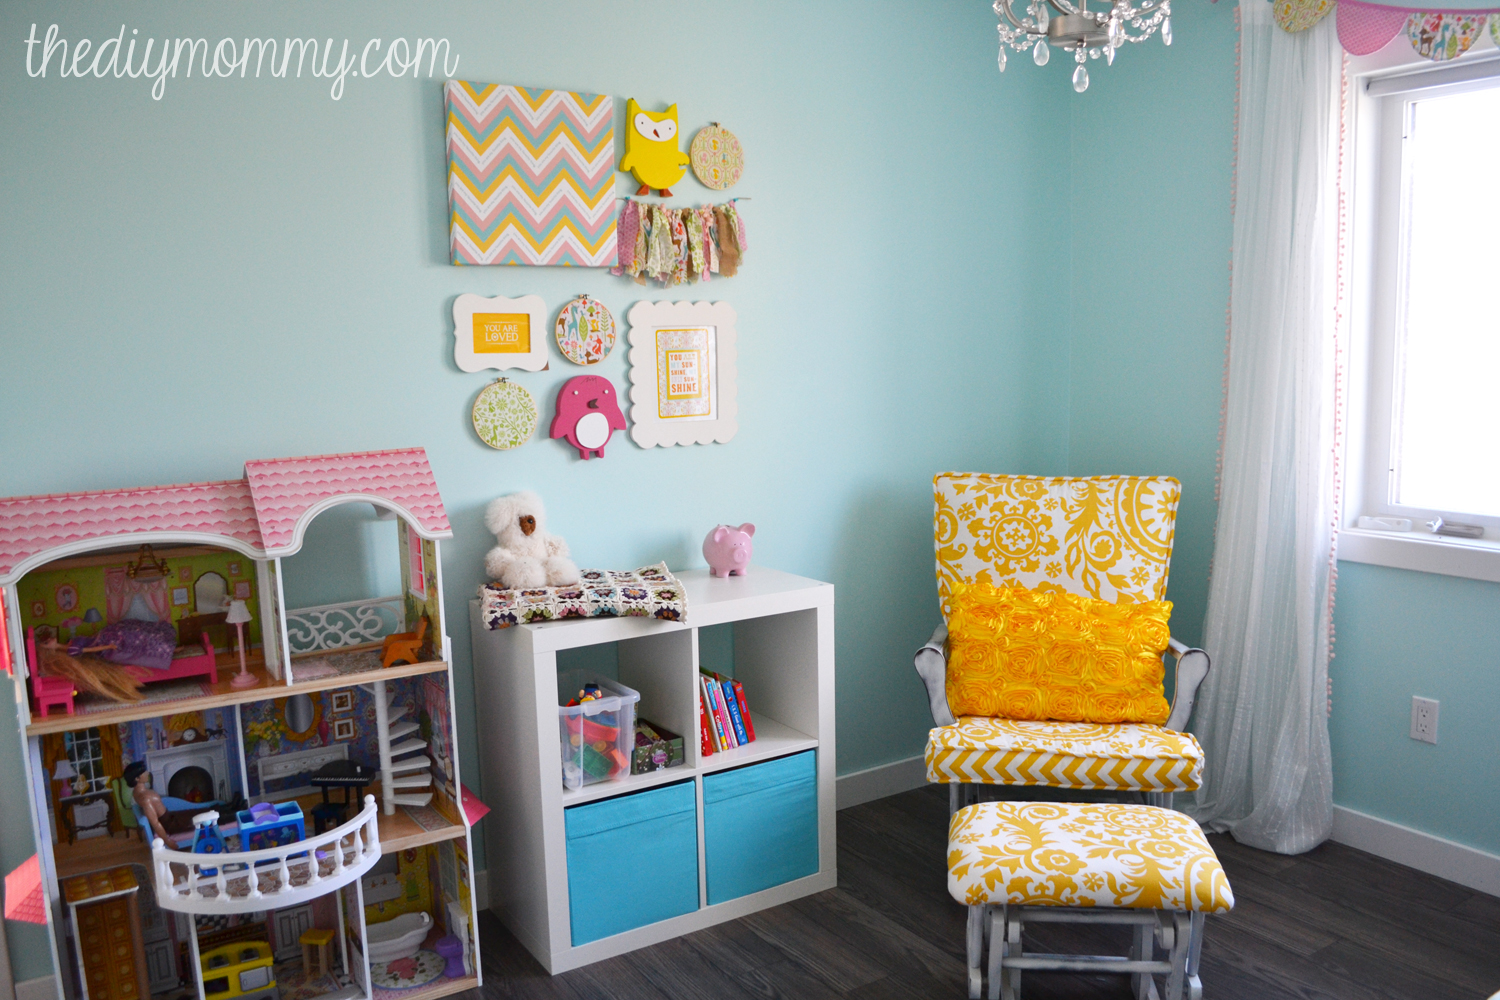 A Sunny Woodland Nursery. This sweet nursery is decorated in aqua, yellow, blush pink and chocolate brown and features a ton of inexpensive DIY decor elements.